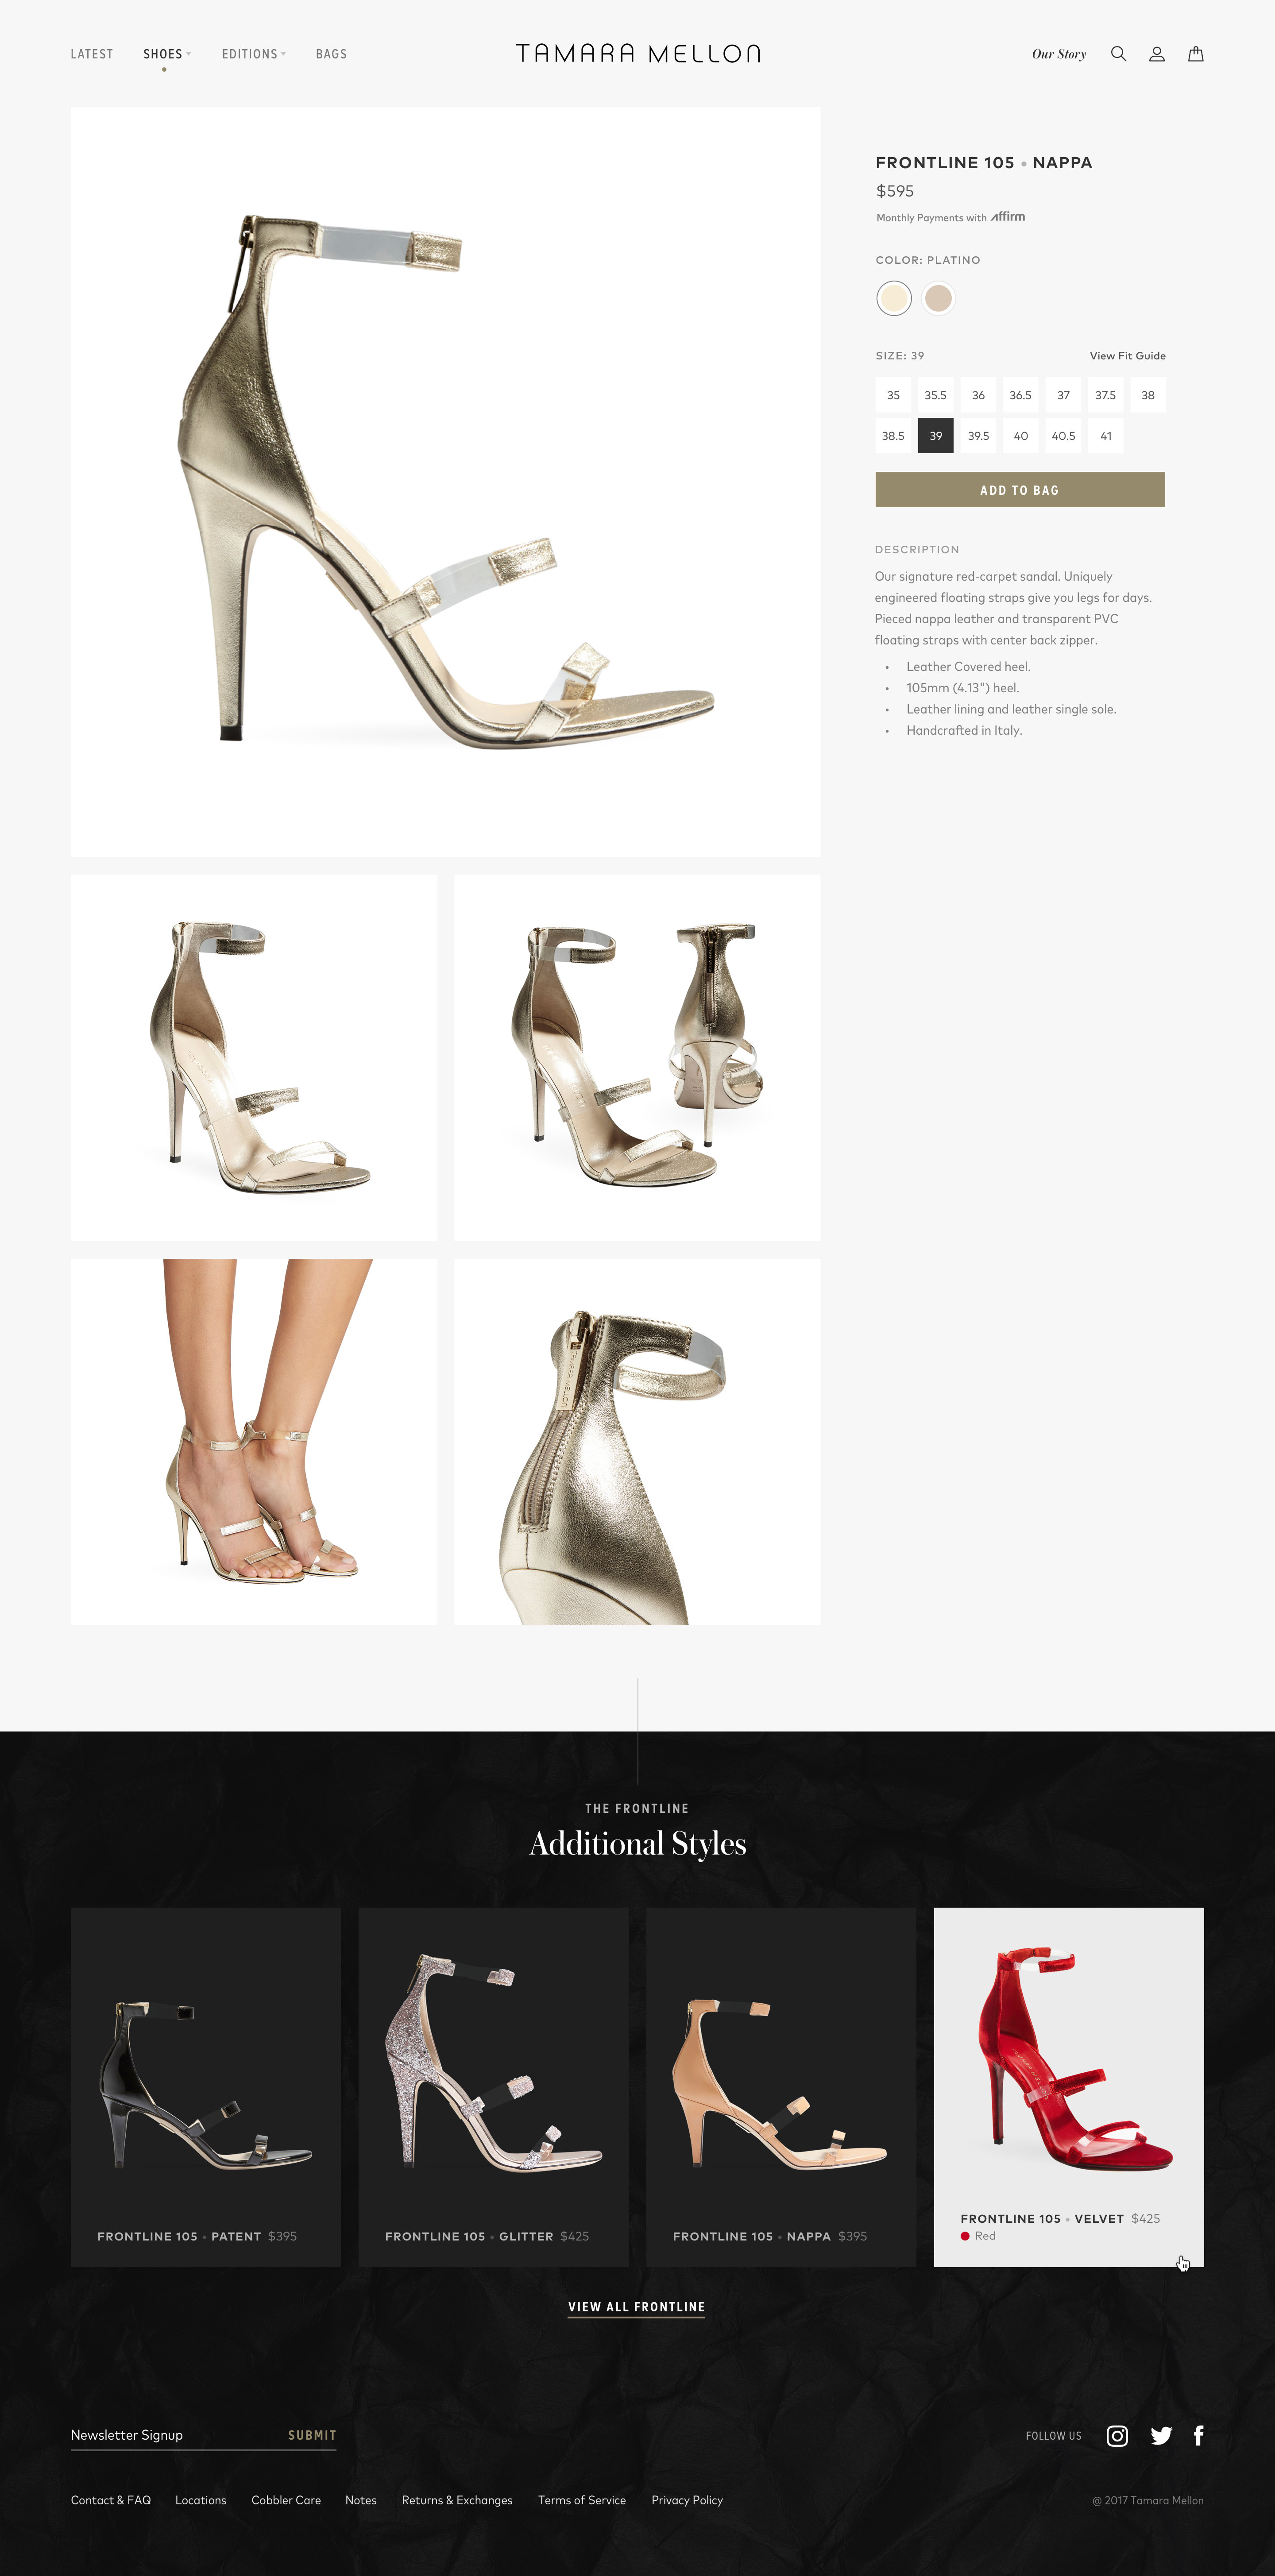 Tamaramellon product full